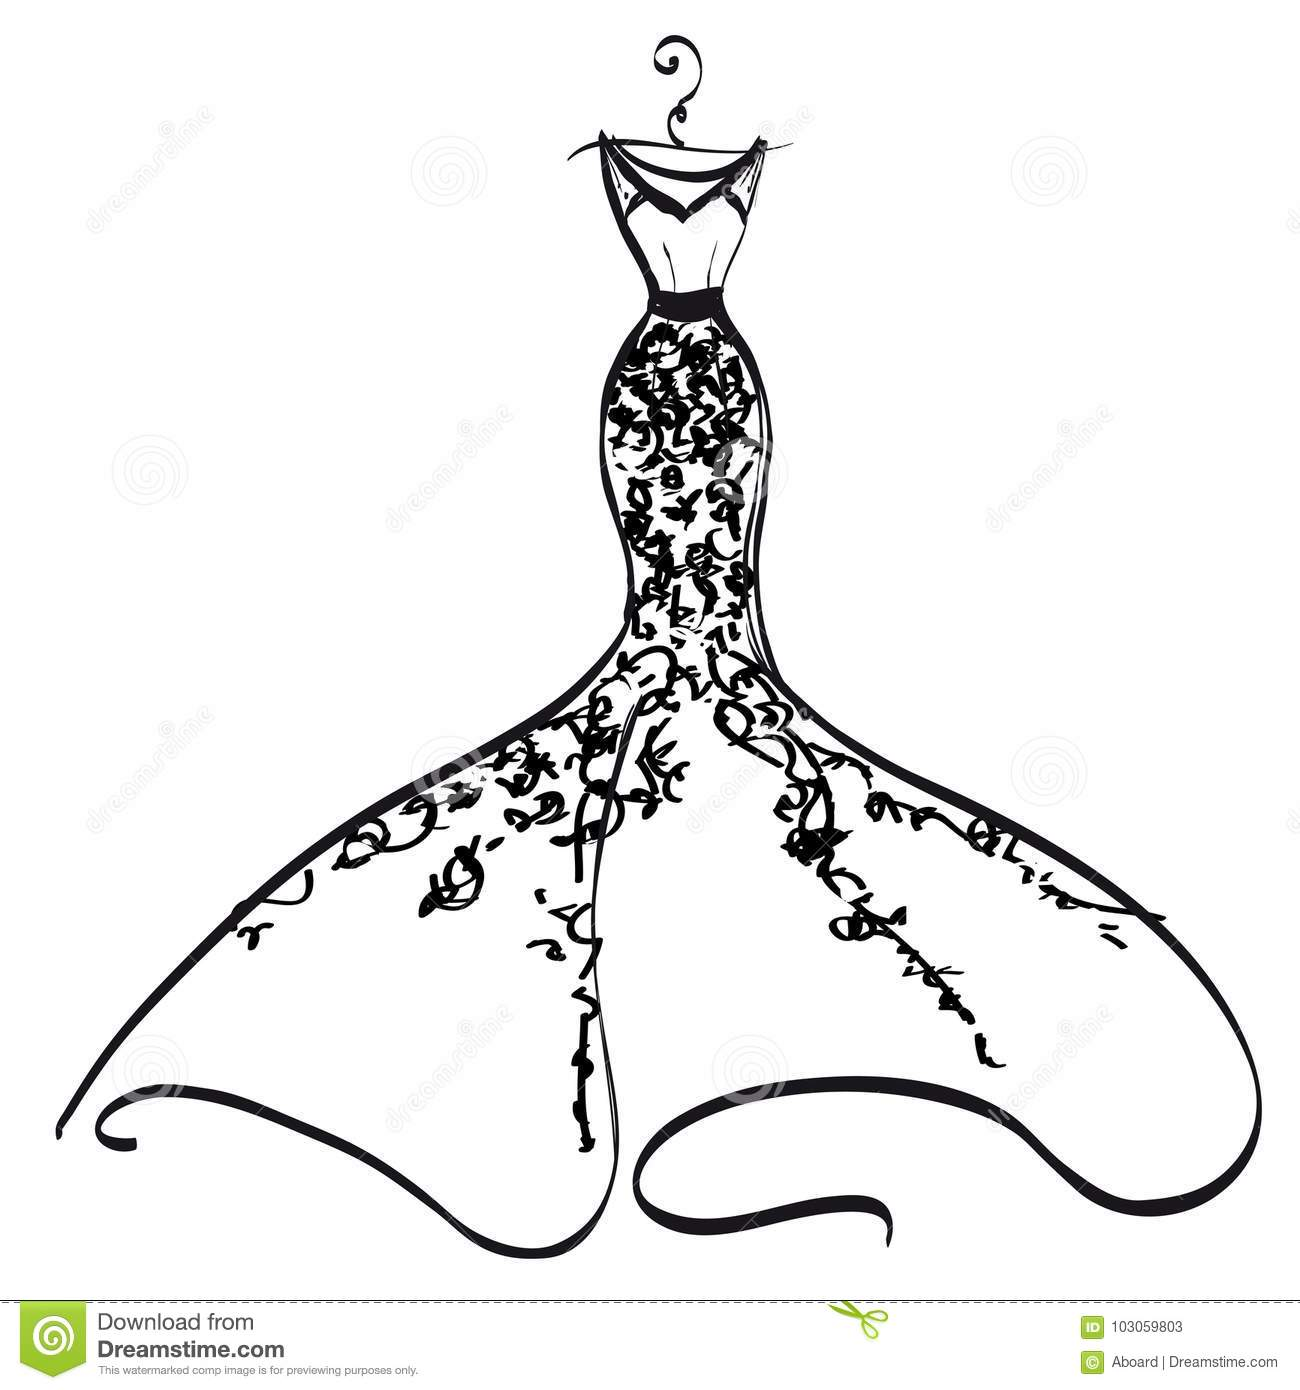 Design A Wedding Dress.Wedding Dress Design Black And White Stock Vector